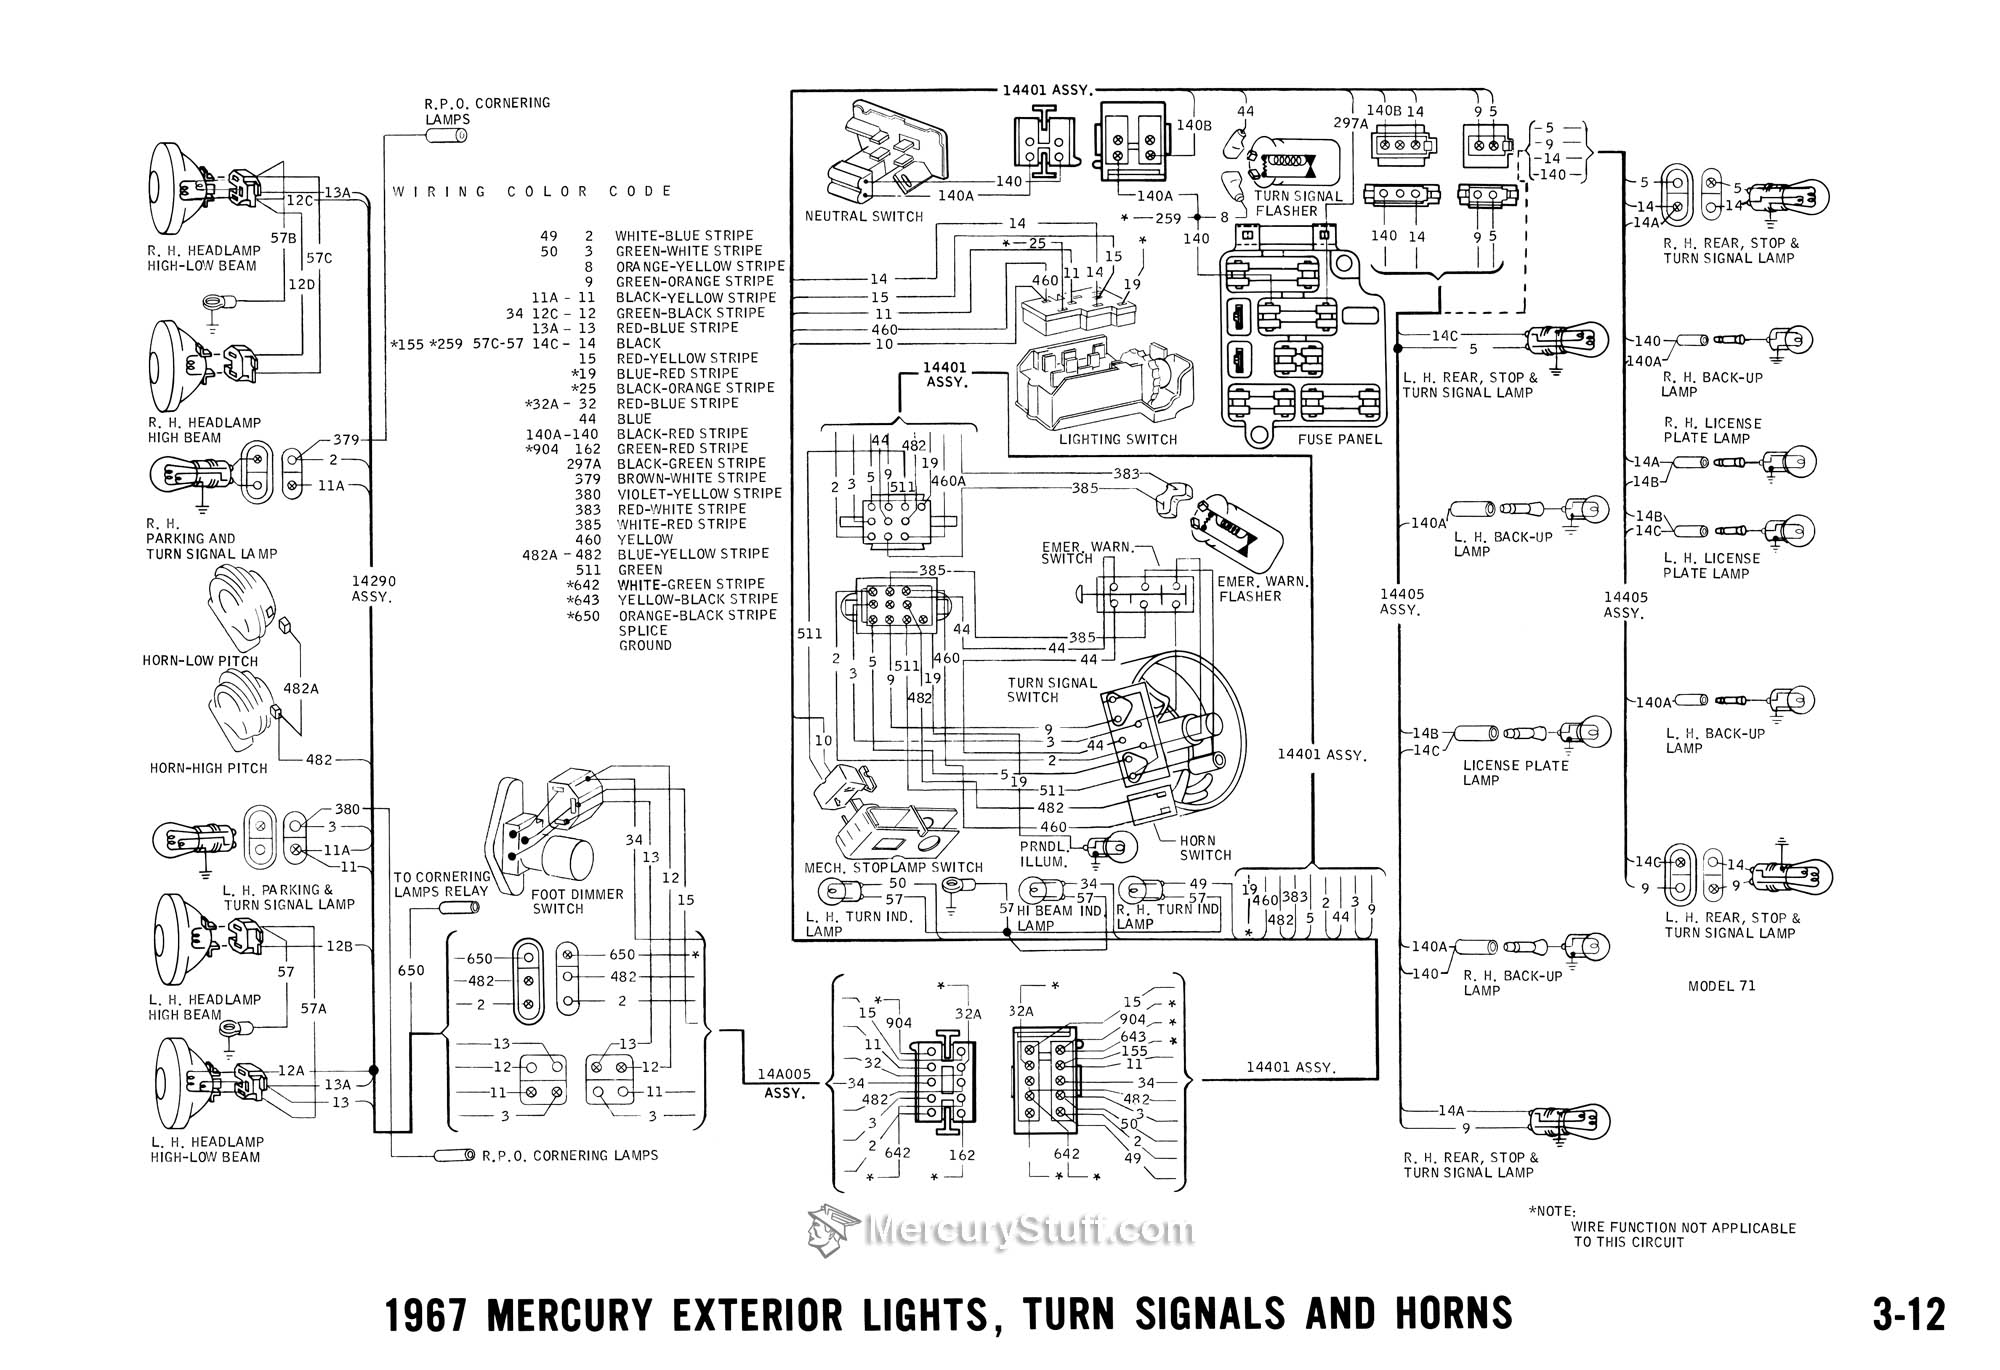 1967 mercury exterior lights turn signals horns wiring diagram 2006 mercury grand marquis the wiring diagram mercury 14 pin wiring harness diagram at mr168.co